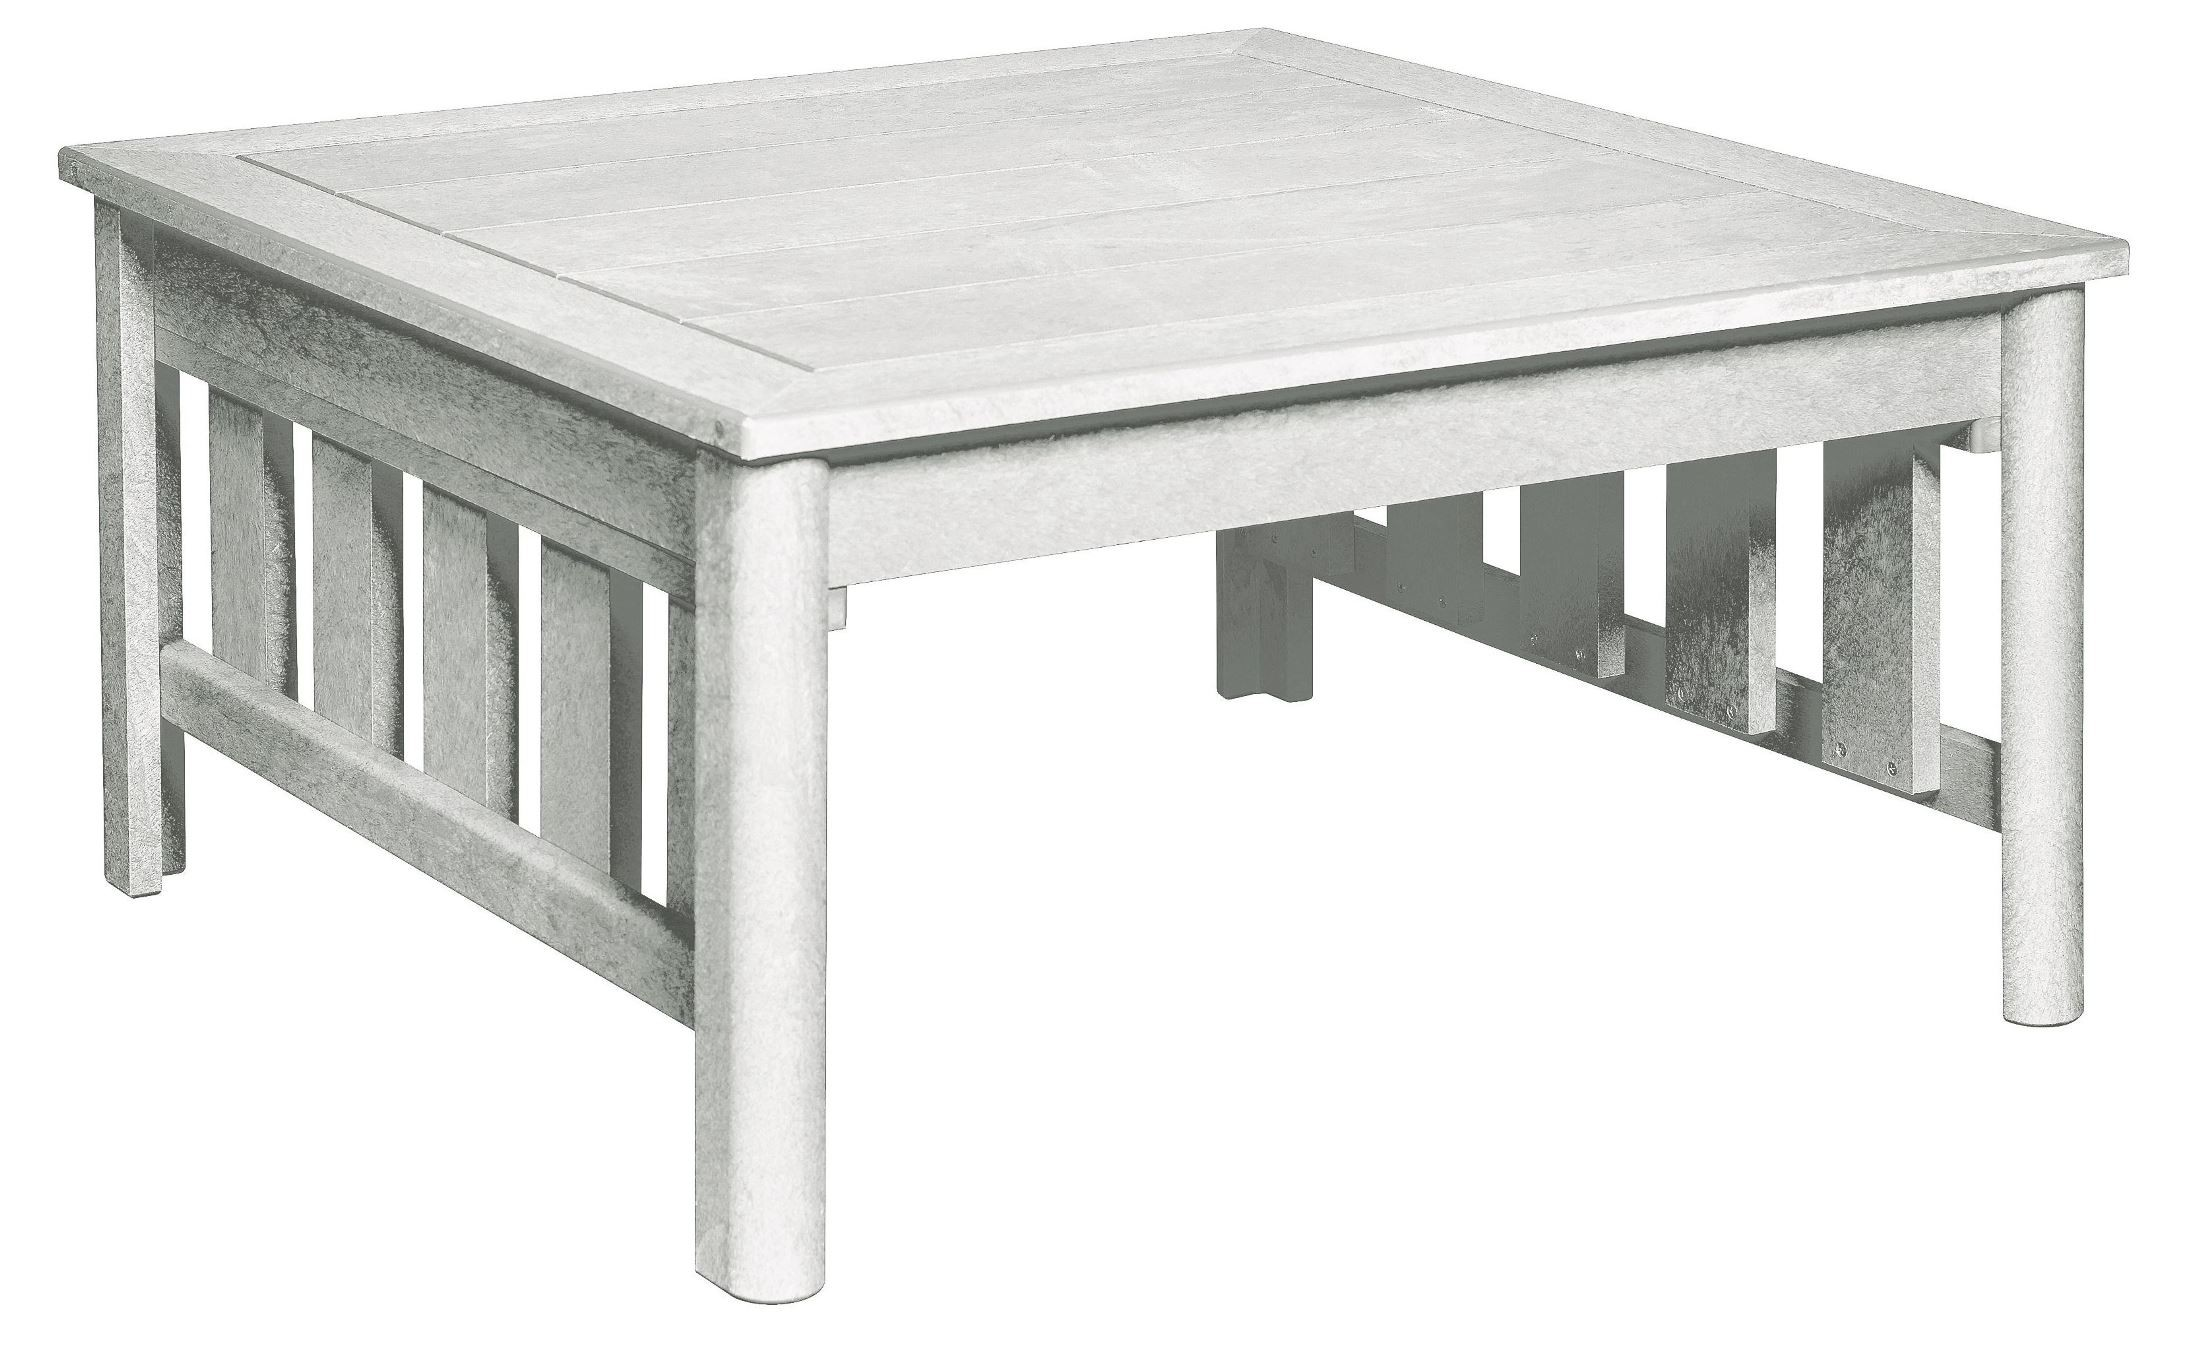 Stratford White Square Cocktail Table From Cr Plastic Dst150 02 Coleman Furniture